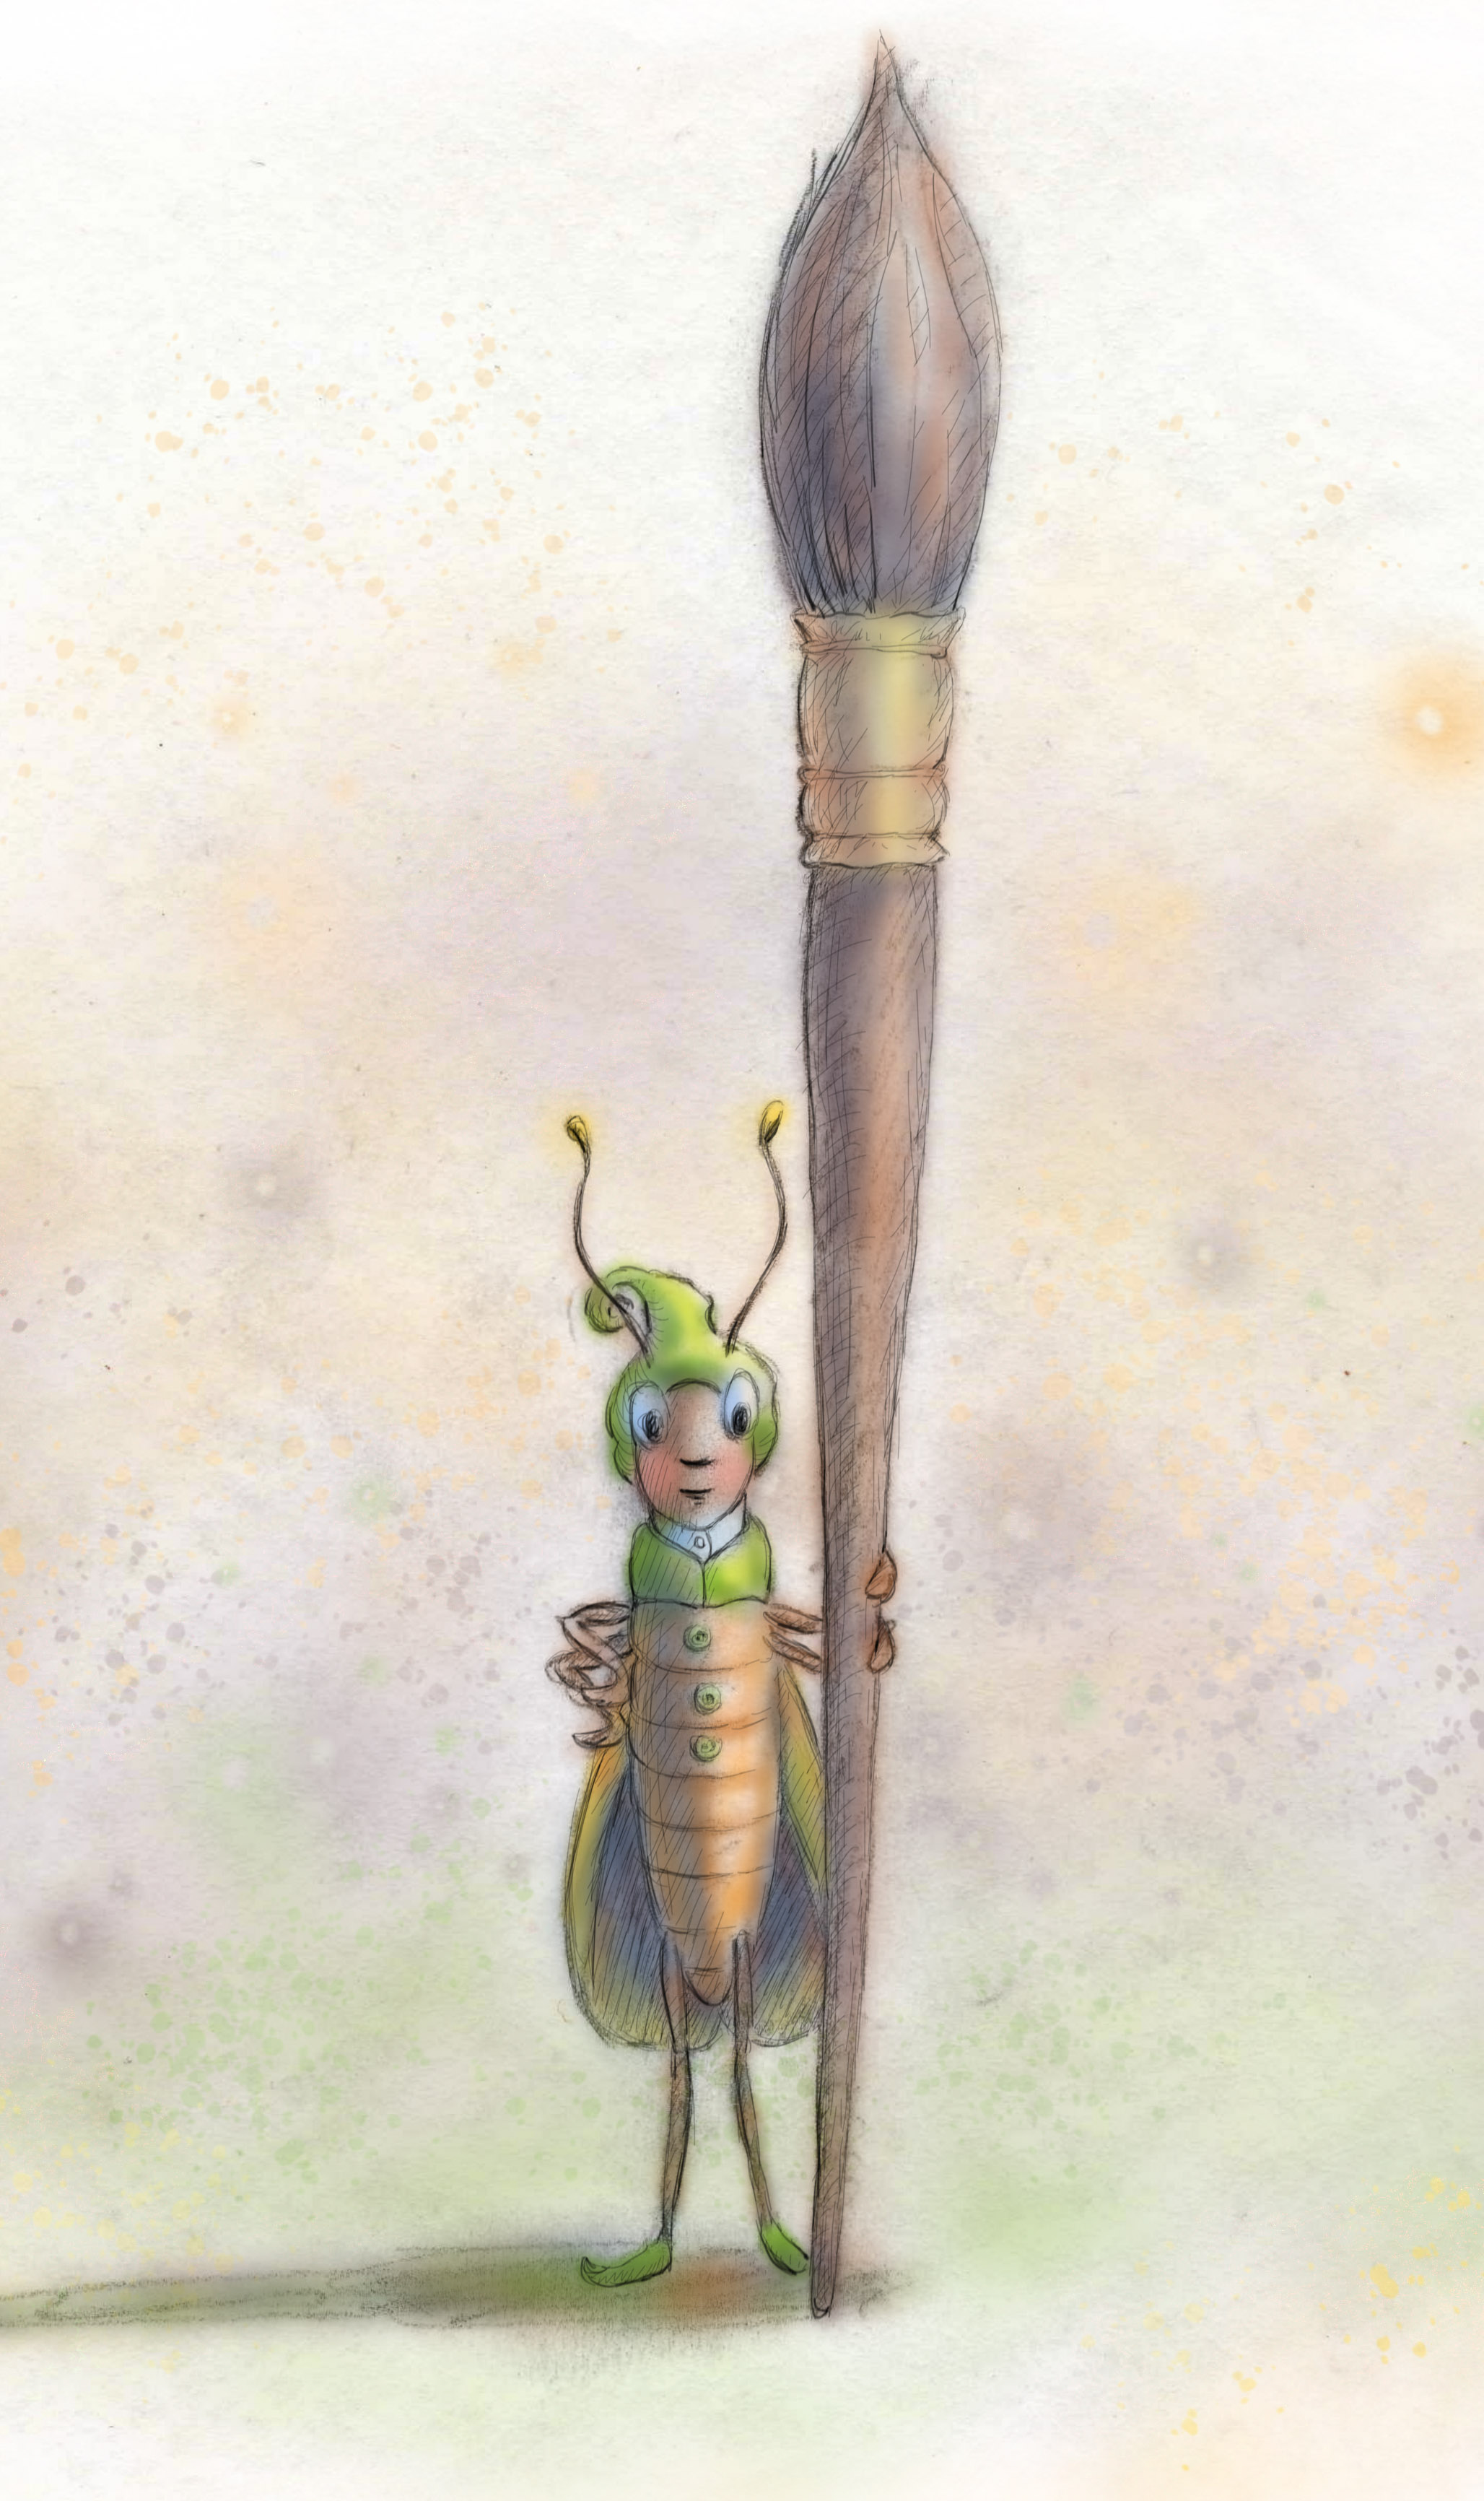 busy bug with brush background effects copy cropped.jpg